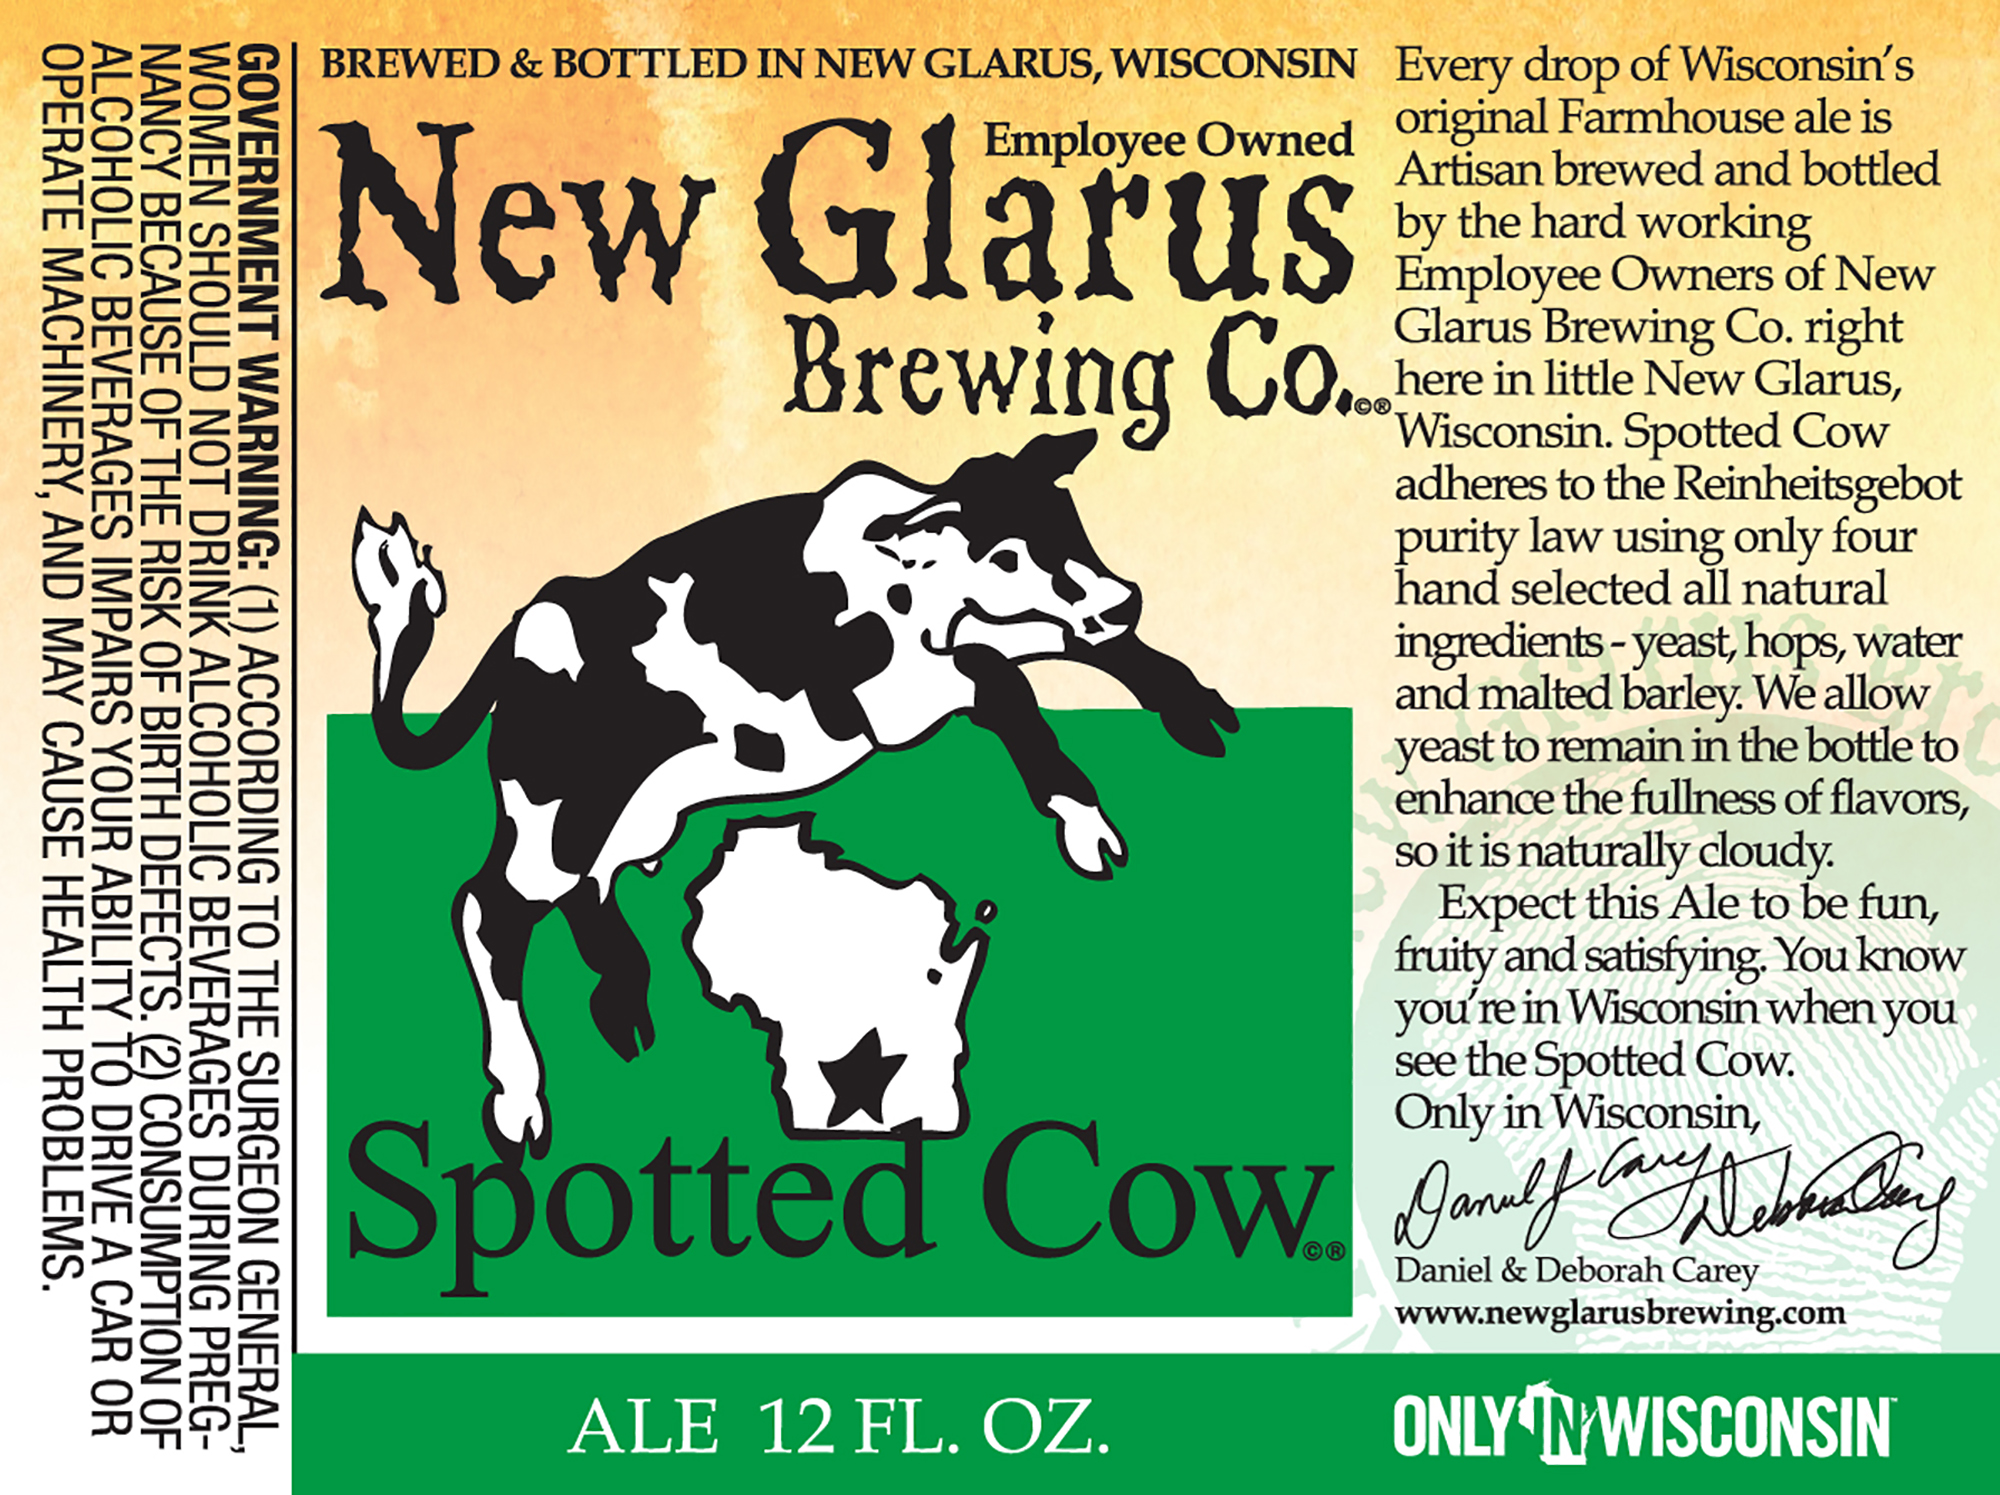 New Glarus Brewing Company's Spotted Cow